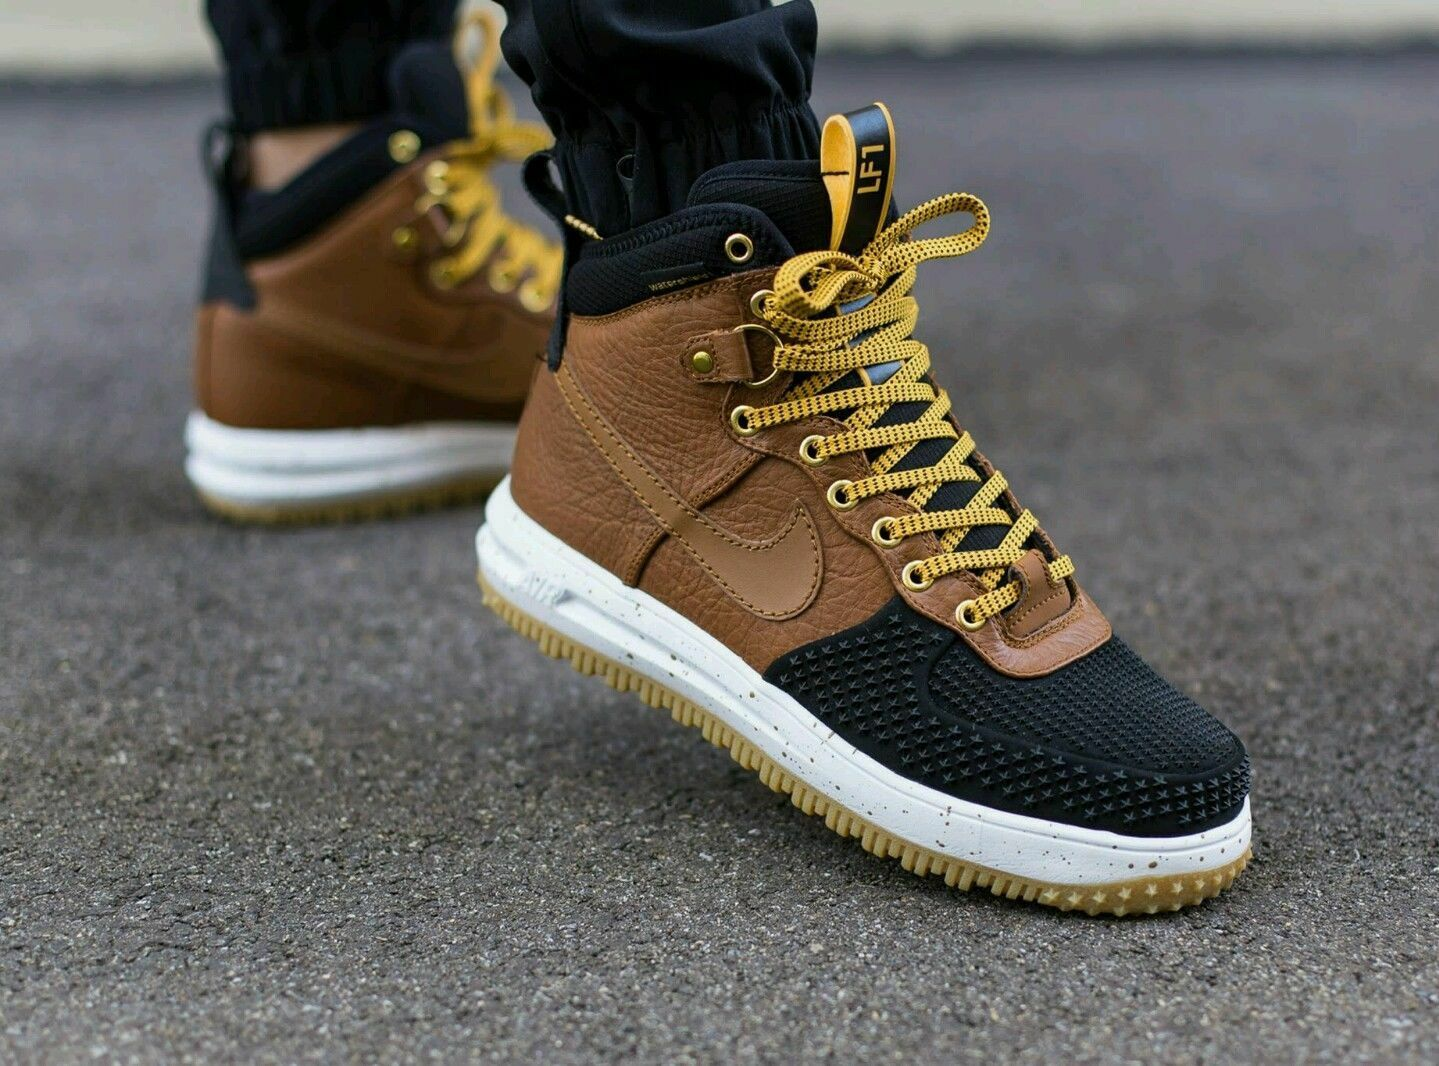 ed7cba6de4ad6e 80%OFF Nike Lunar Air Force One 1 Sneakerboot Duckboot 805899-004 ...